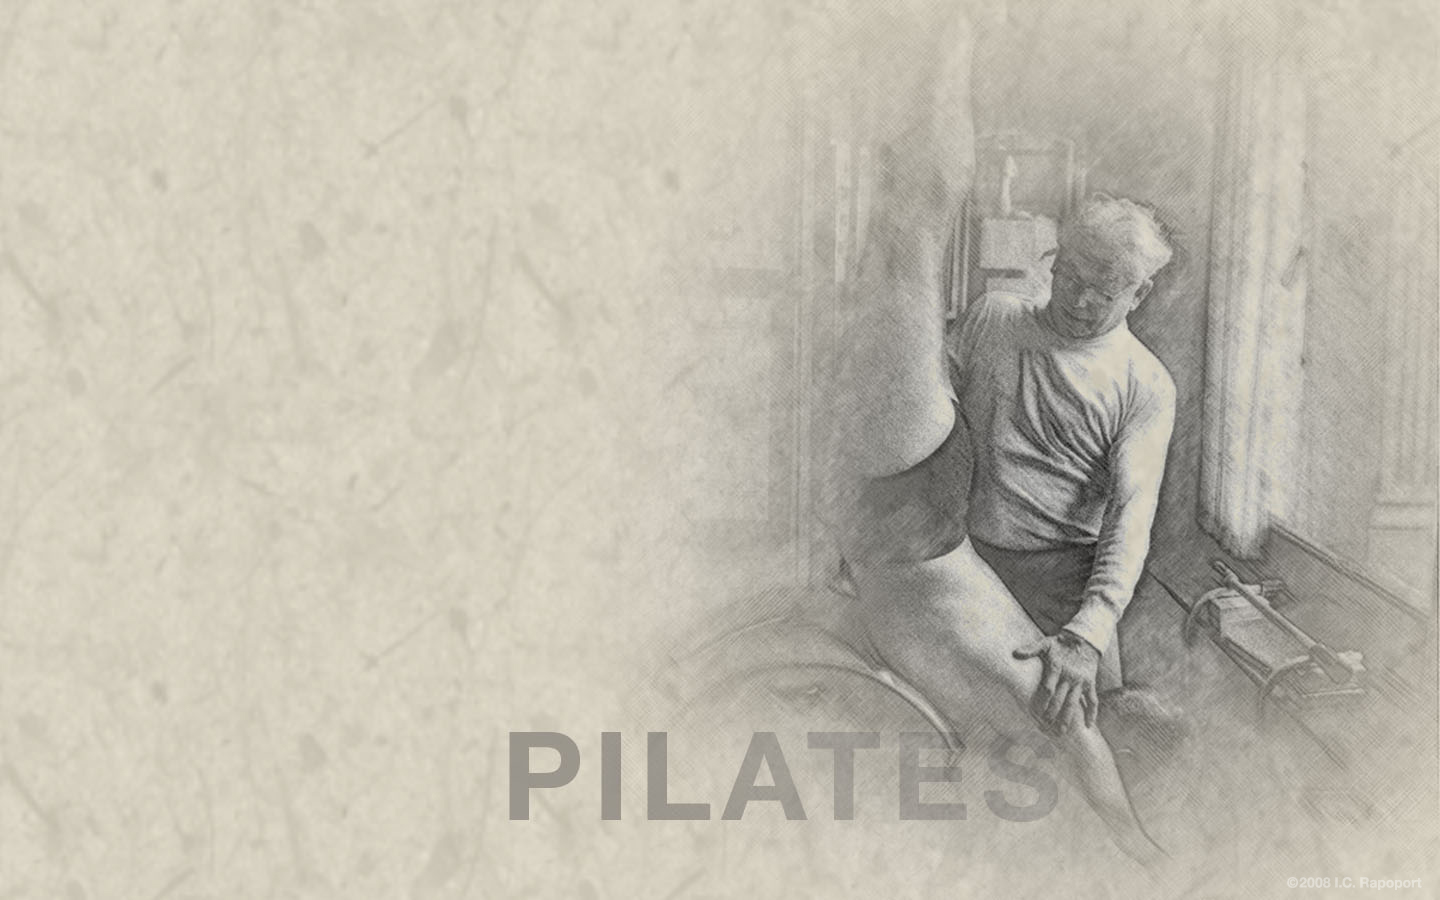 joseph pilates Joseph humbertus pilates was a man who believed completely in his method and practiced what he prescribed to others well into his eighties even as an older man he was quite robust and vital until his death, at the age of 87.